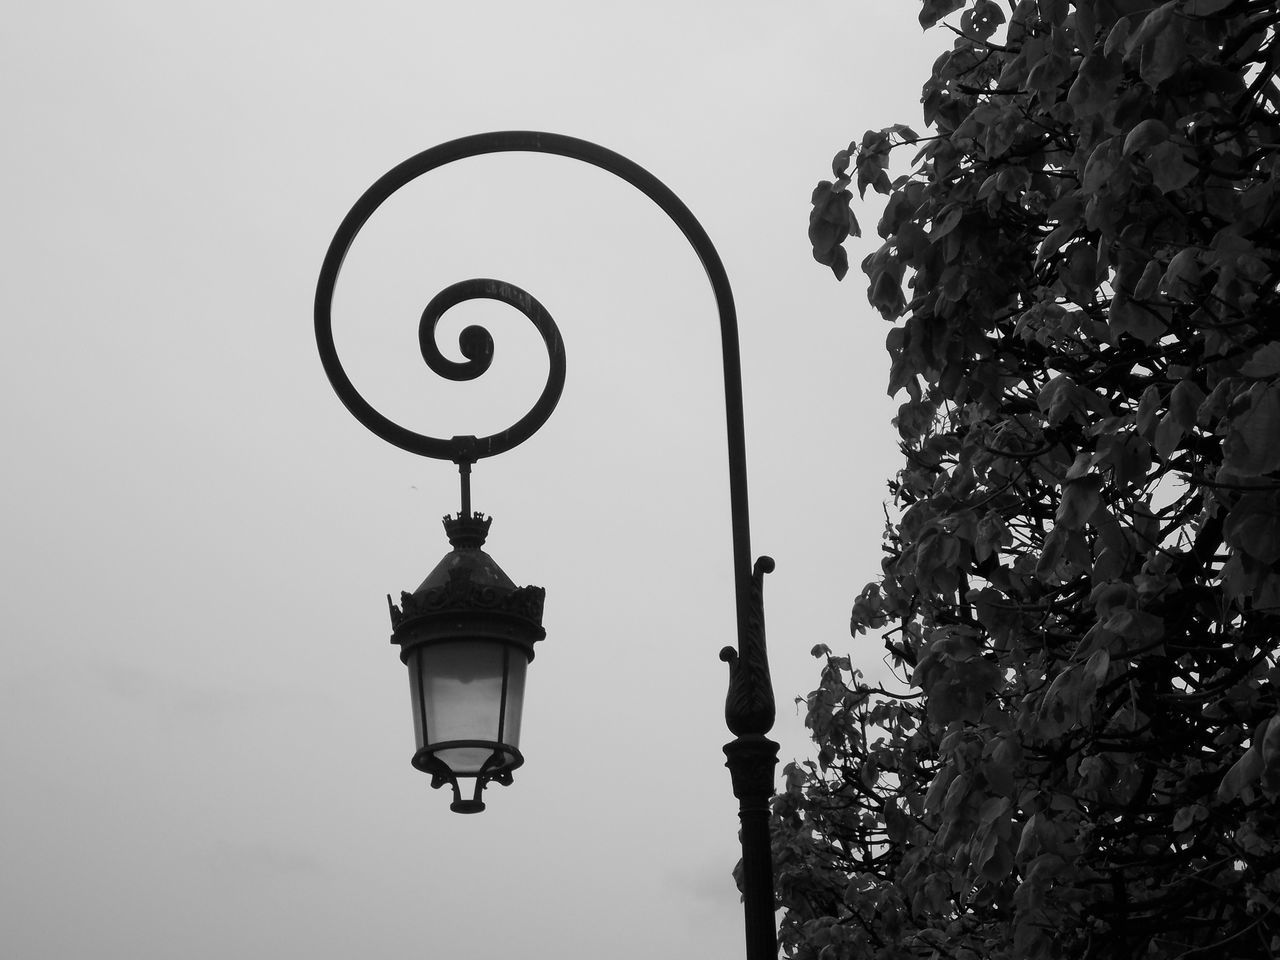 Low Angle View Of Street Light By Tree Against Sky